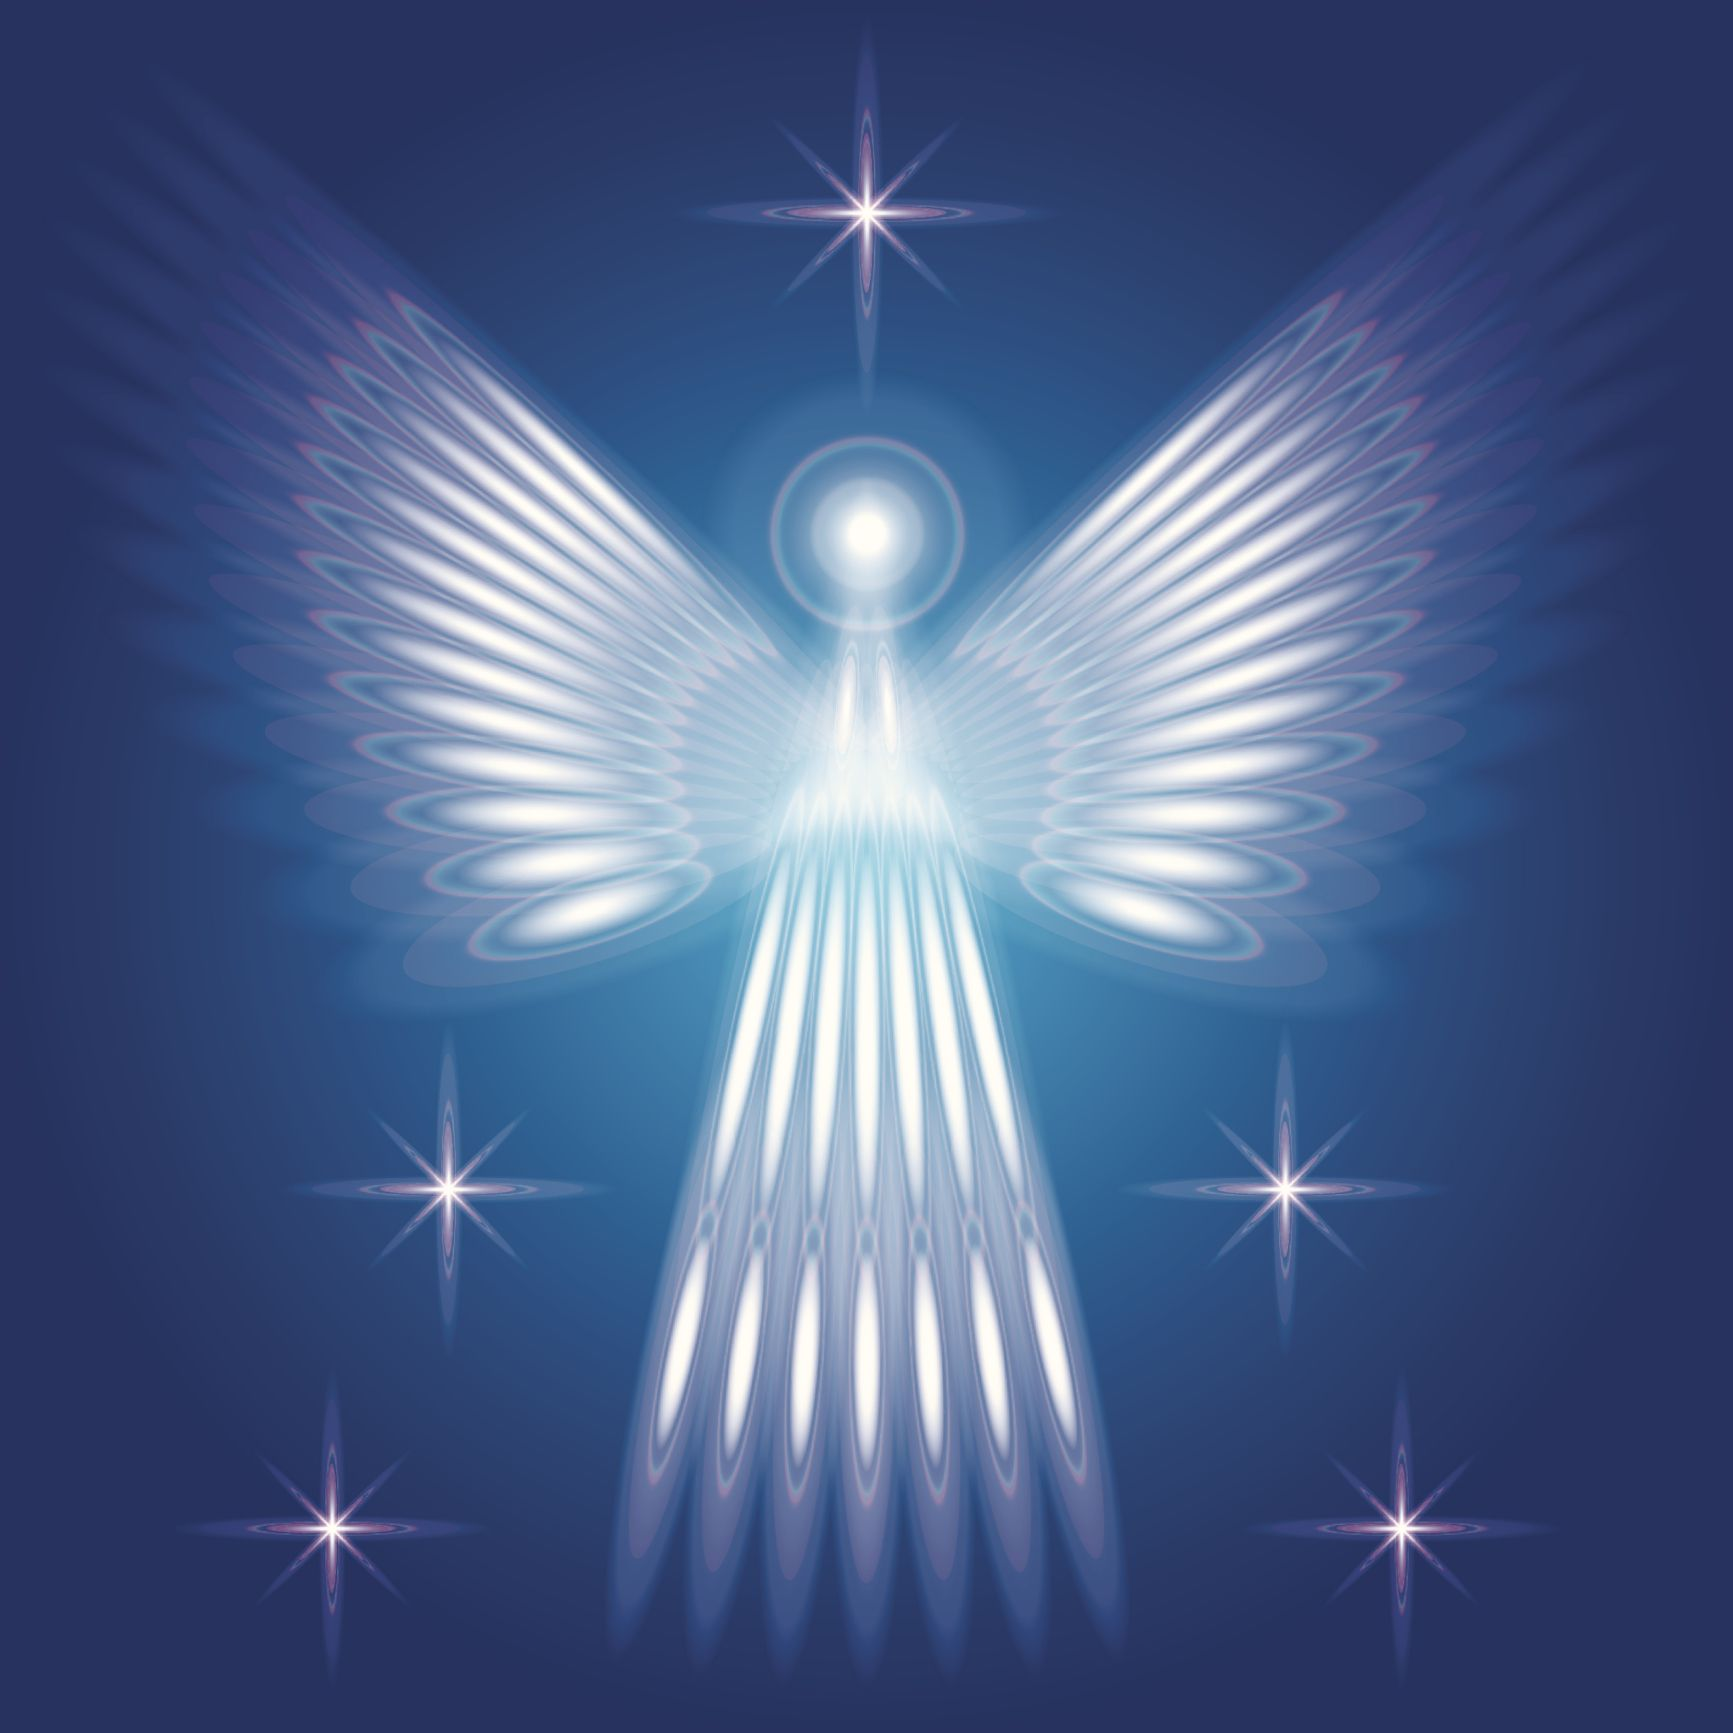 The spiritual meaning of light in angels and miracles angels are beings of light biocorpaavc